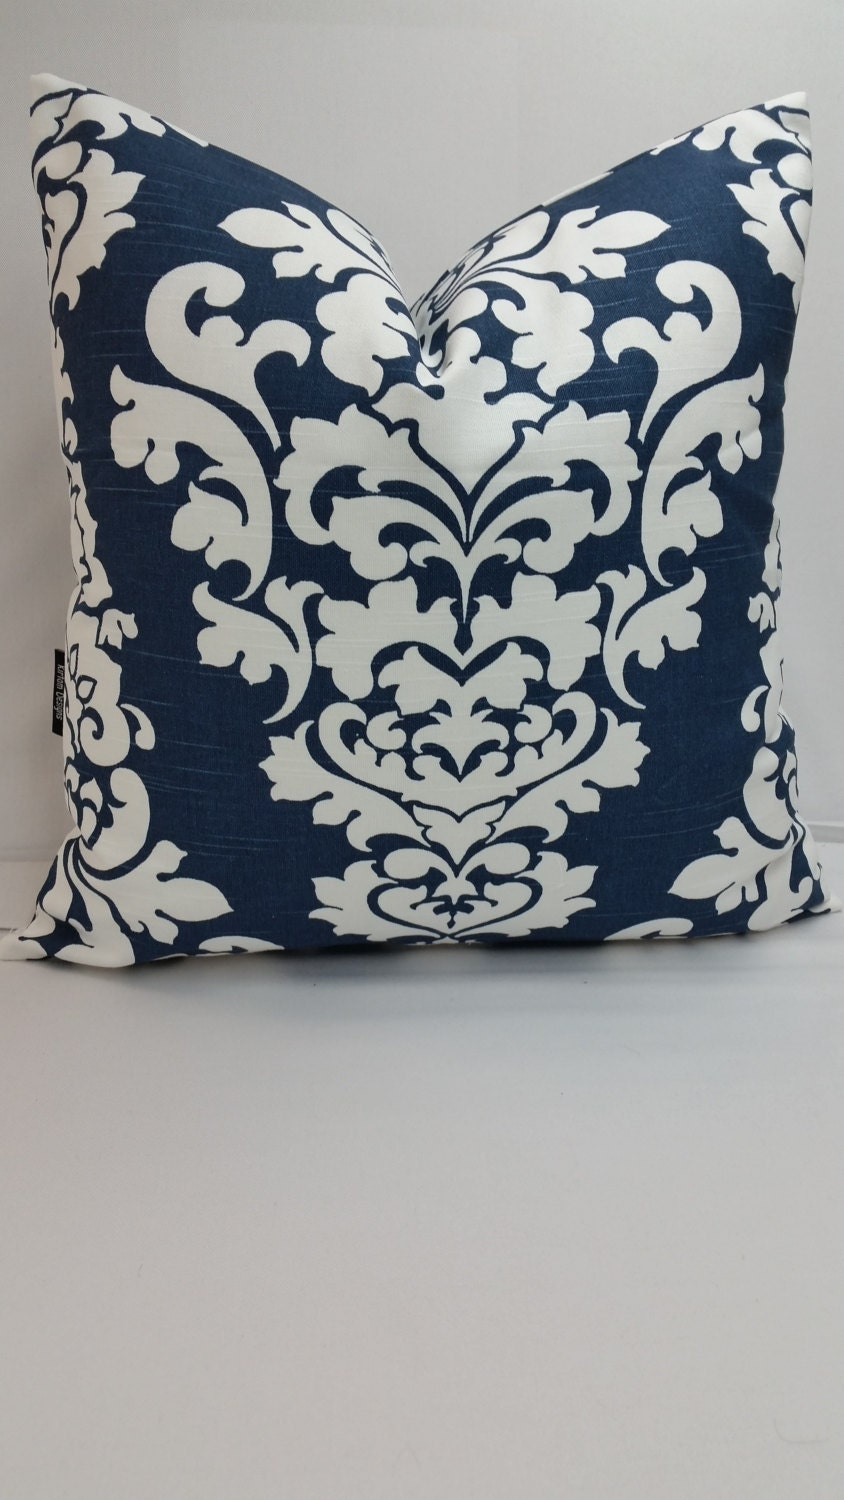 Decorative Pillows In Navy Blue : Decorative throw pillow Berlin cotton navy blue by KirtamDesigns